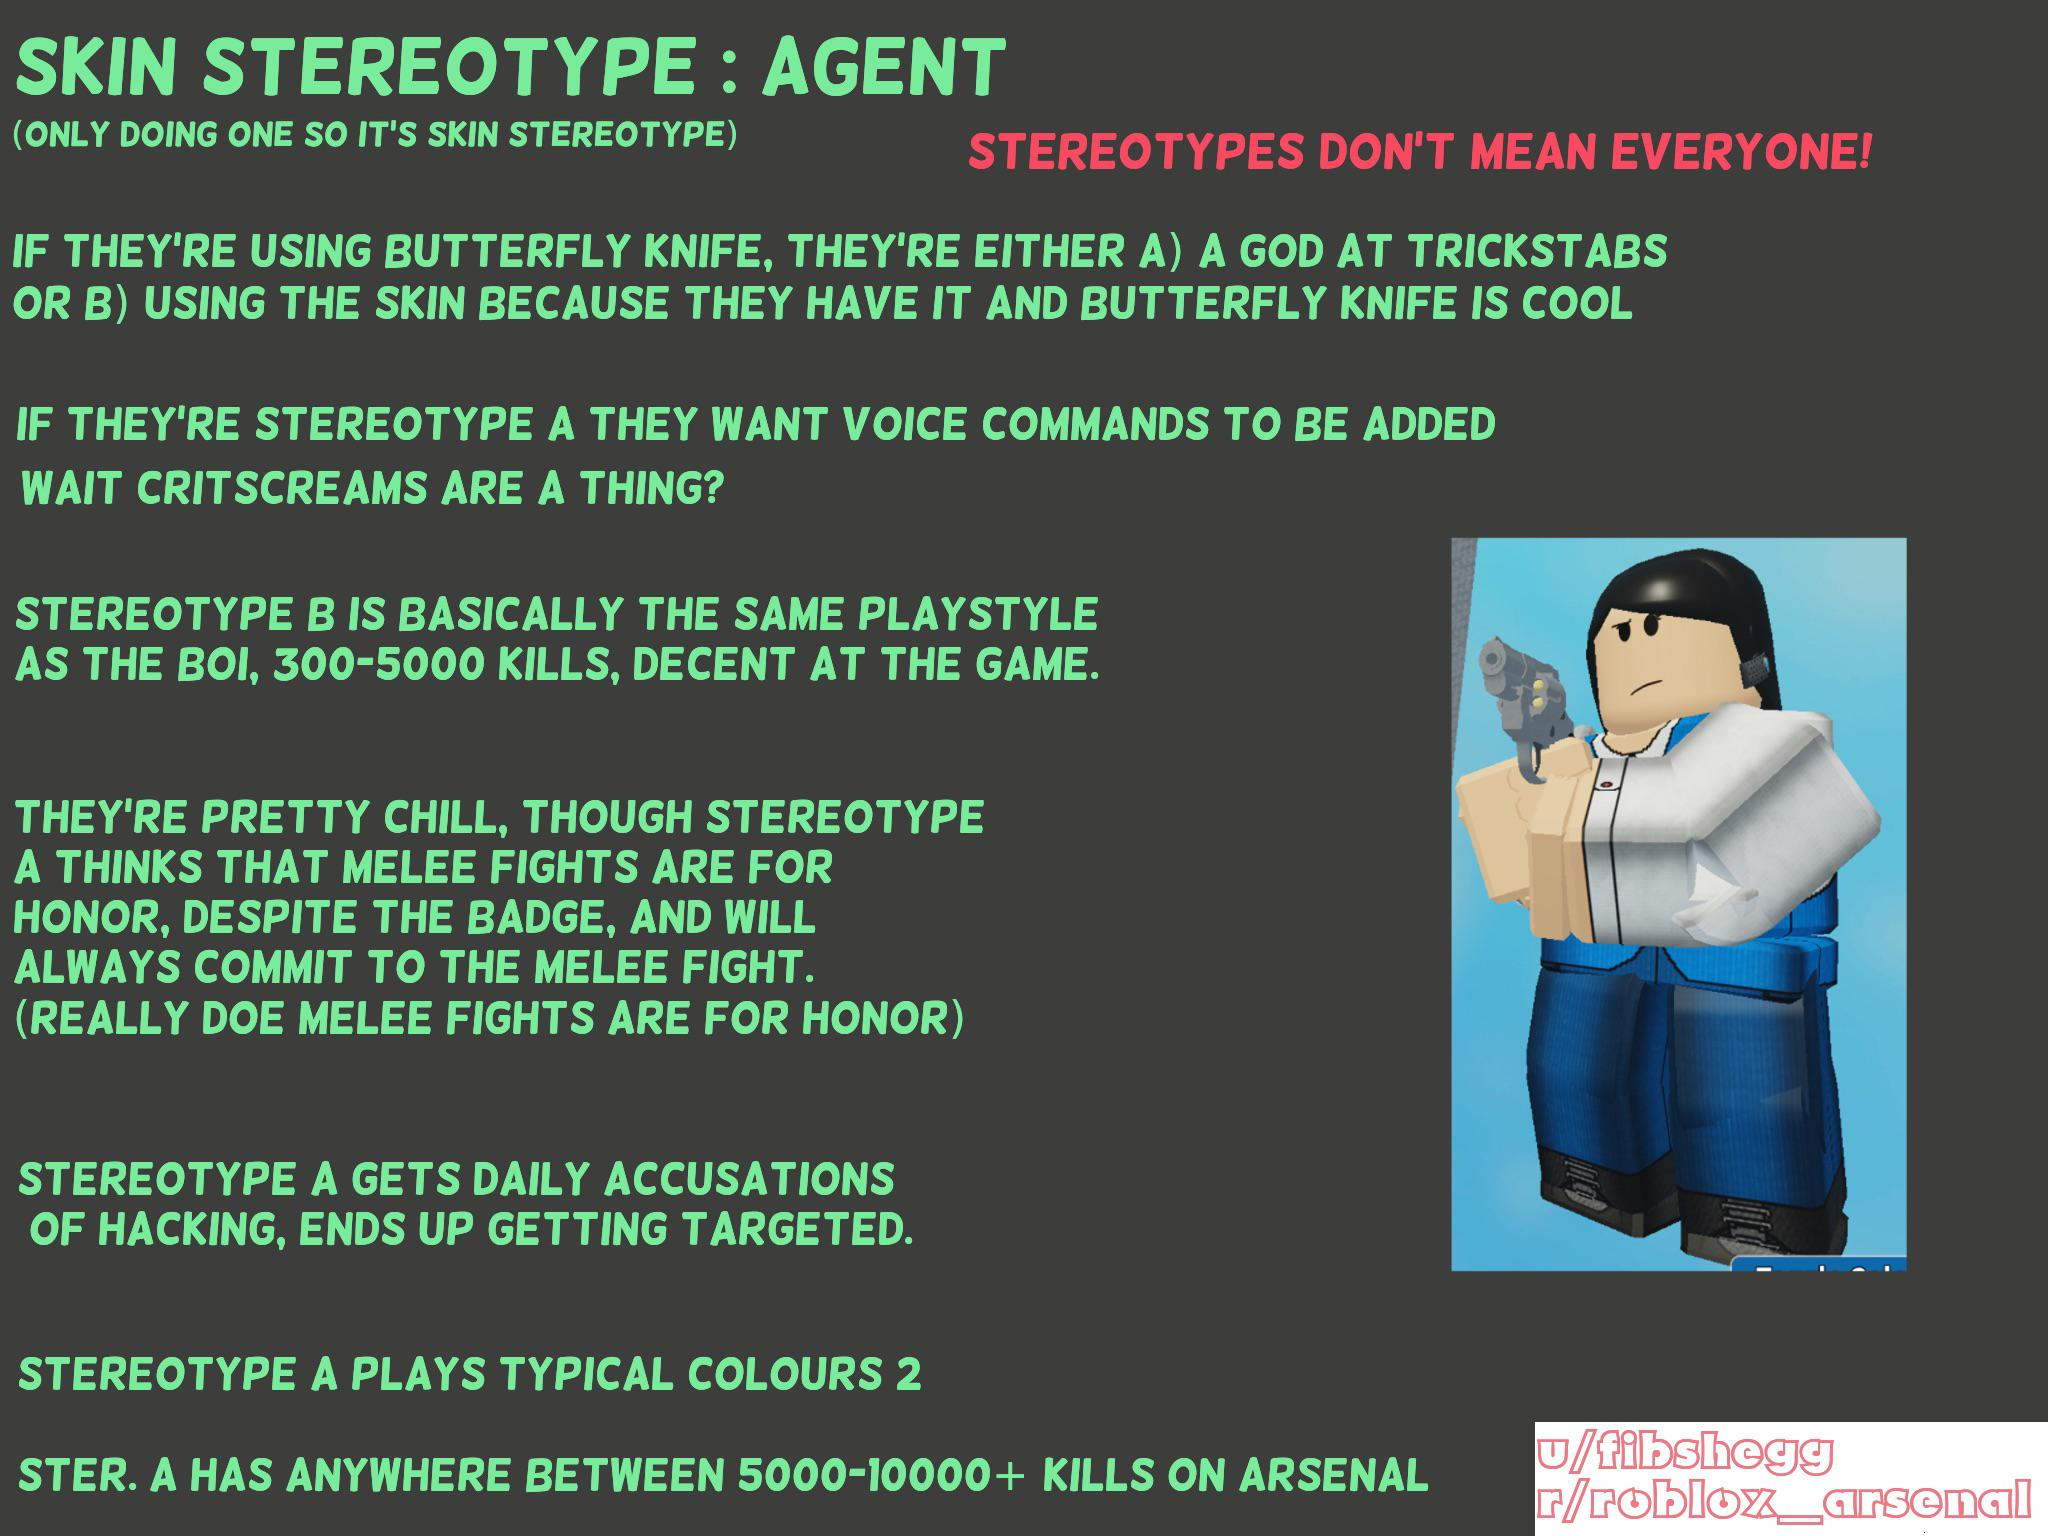 skin stereotype the agent